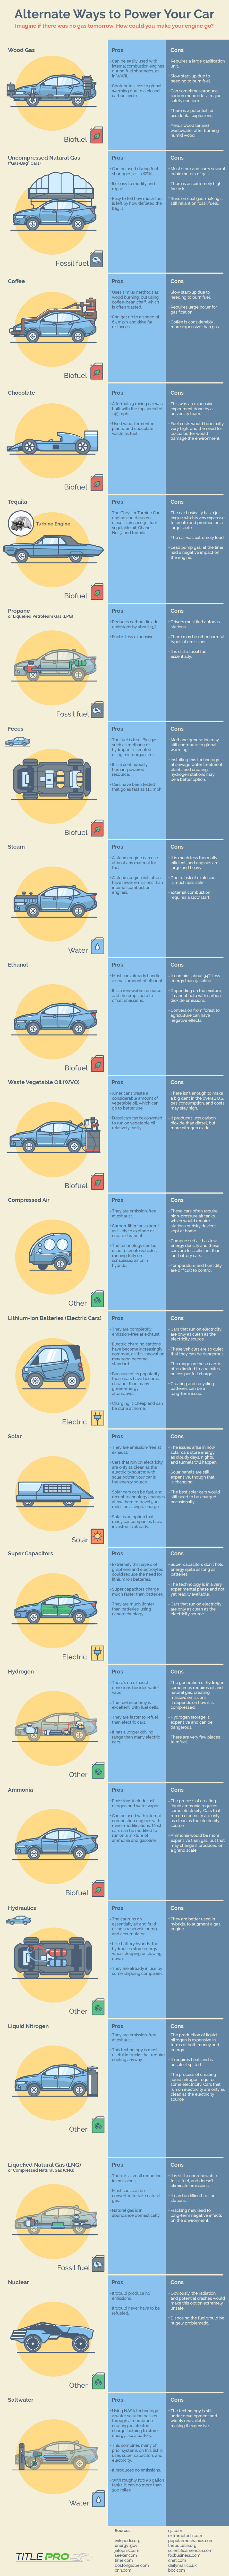 21 Alternatives to Gasoline to Power Your Car - Infographic